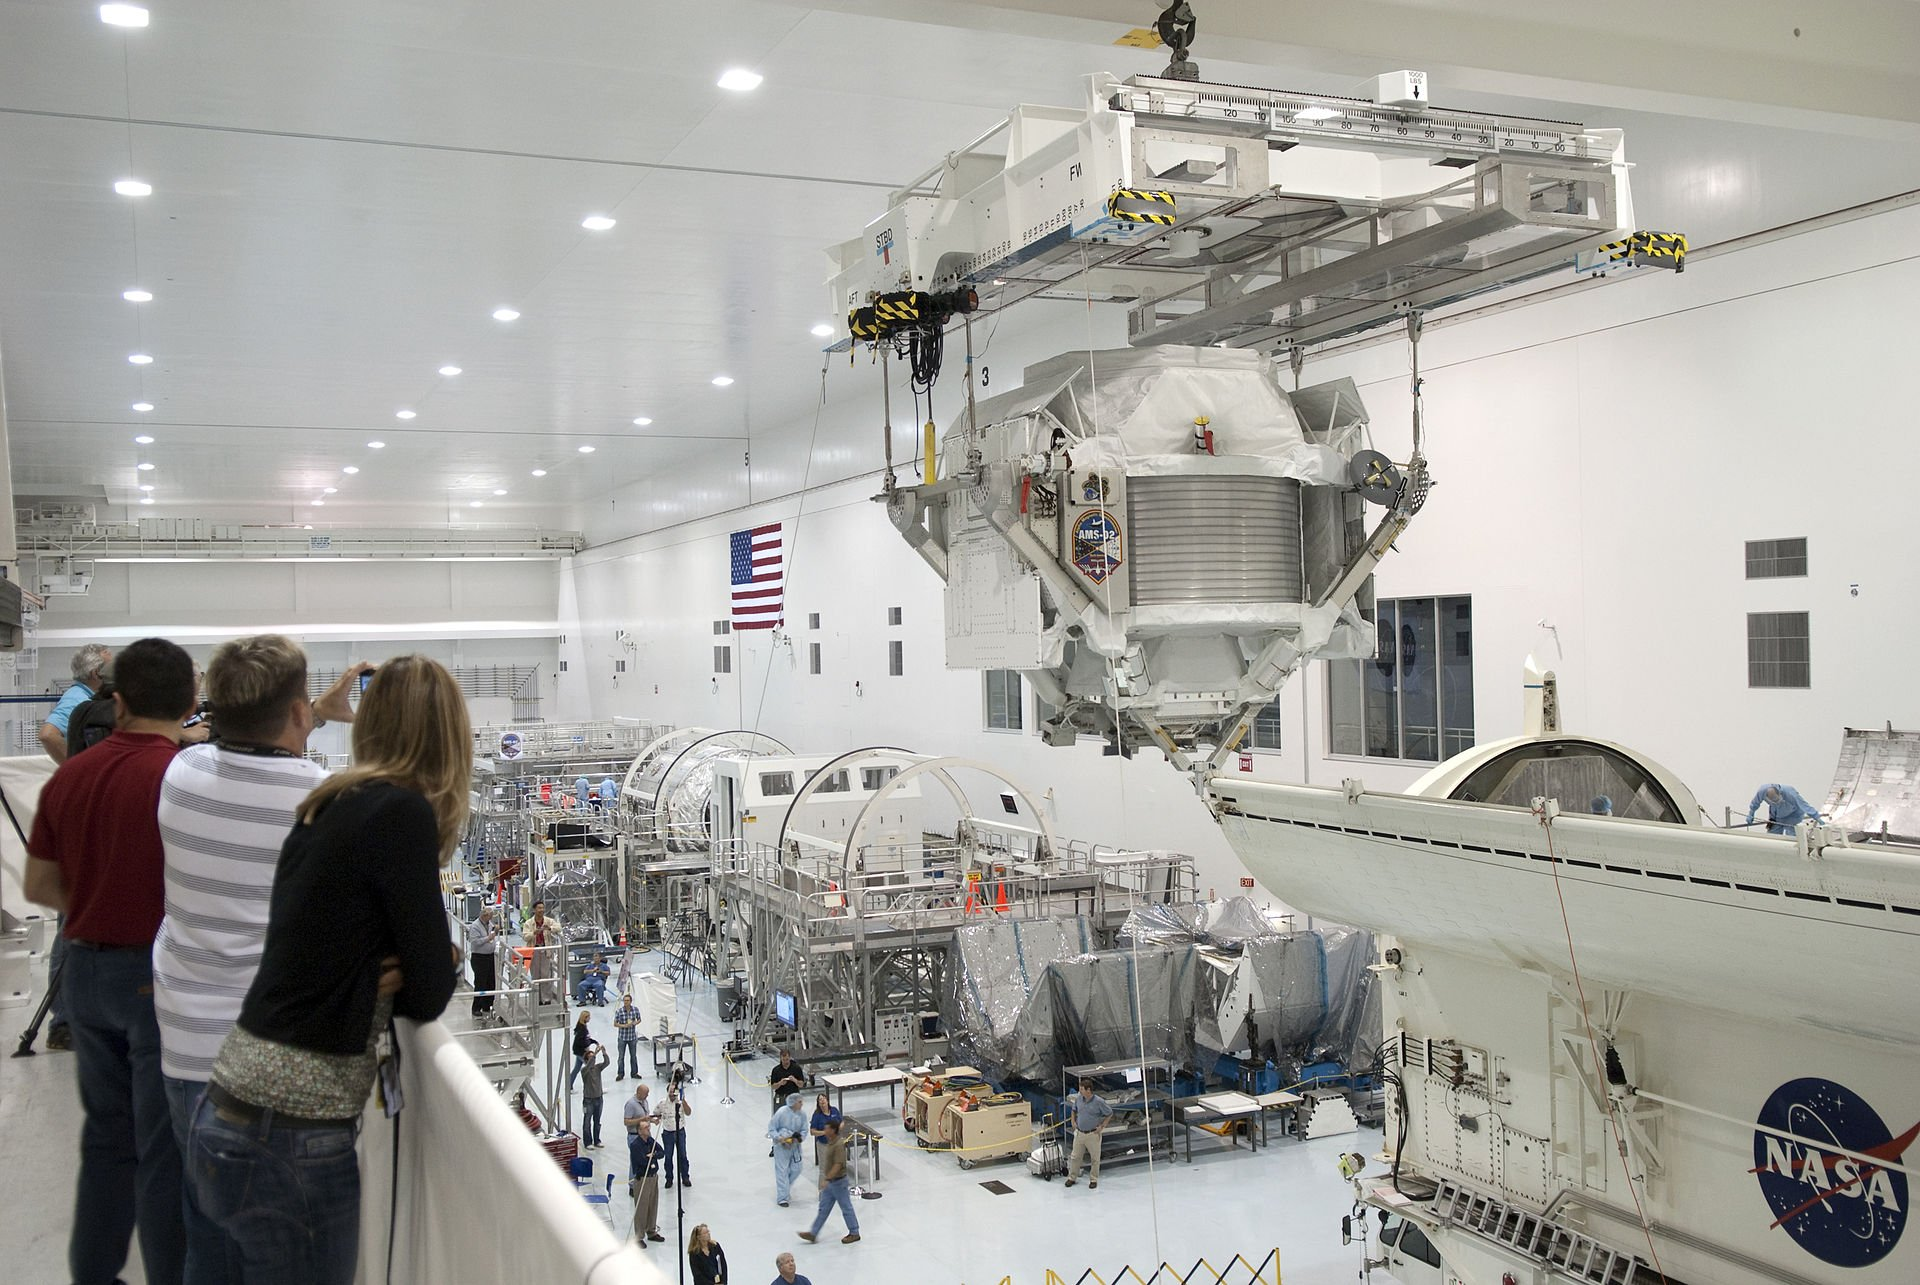 KSC's Space Station Processing Facility prepares a spectrometer, an instrument for the International Space Station to conduct experiments. Courtesy of NASA, 2011.